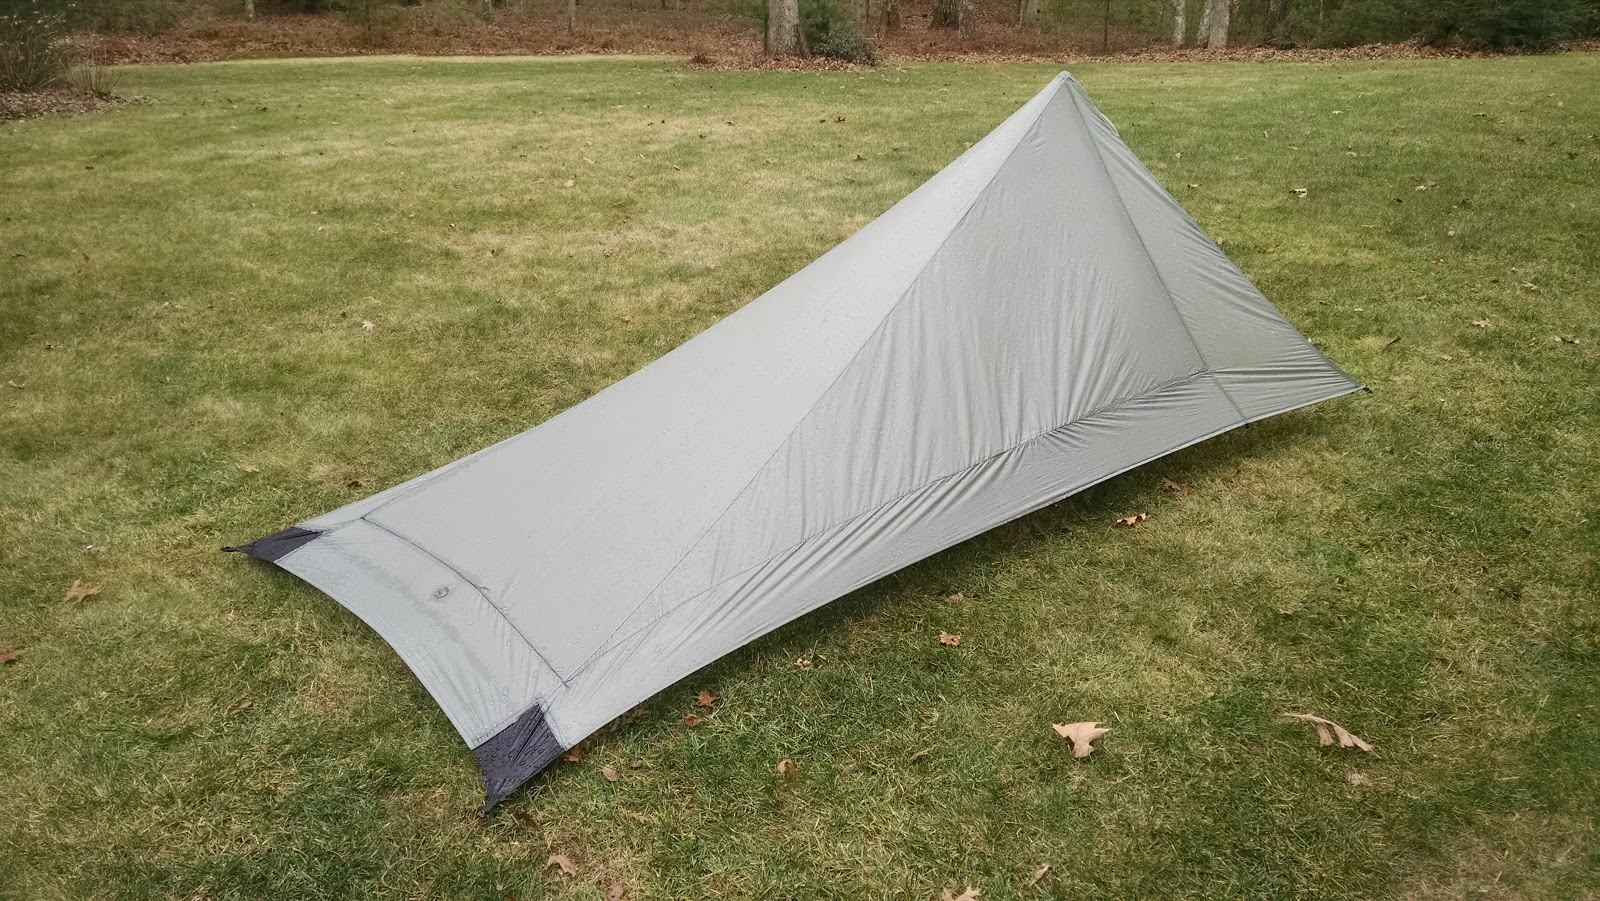 Admittedly I havenu0027t used it on a trip but I did leave it out in a windy rainstorm for 2 days and gave it a separate thorough soaking with the hose. & Uncle Danu0027s Bike Ride: Tarptent Contrail Review and Modification